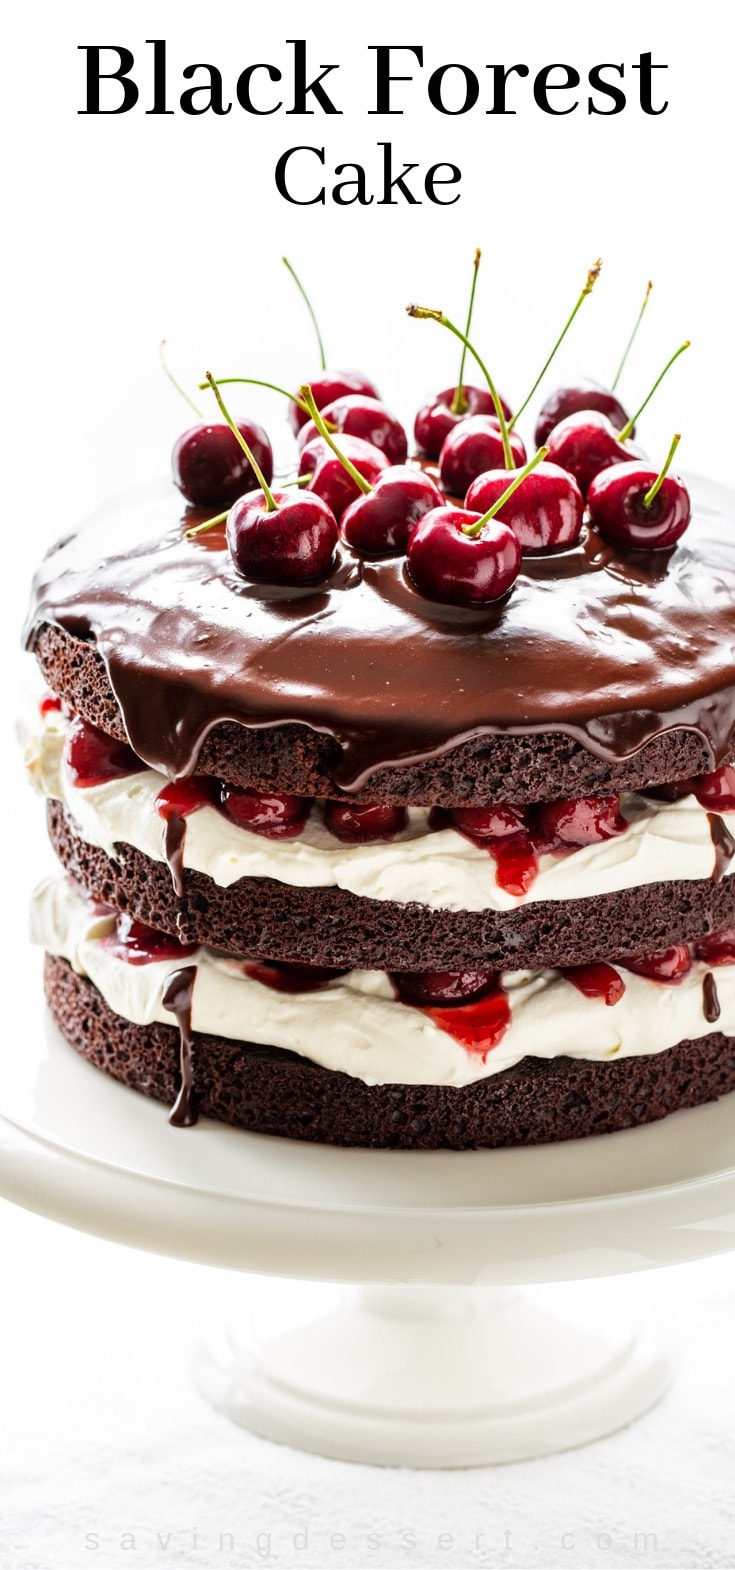 A three layer 'naked' Black Forest Cake topped with a silky chocolate ganache garnished with fresh cherries and a whipped cream filling